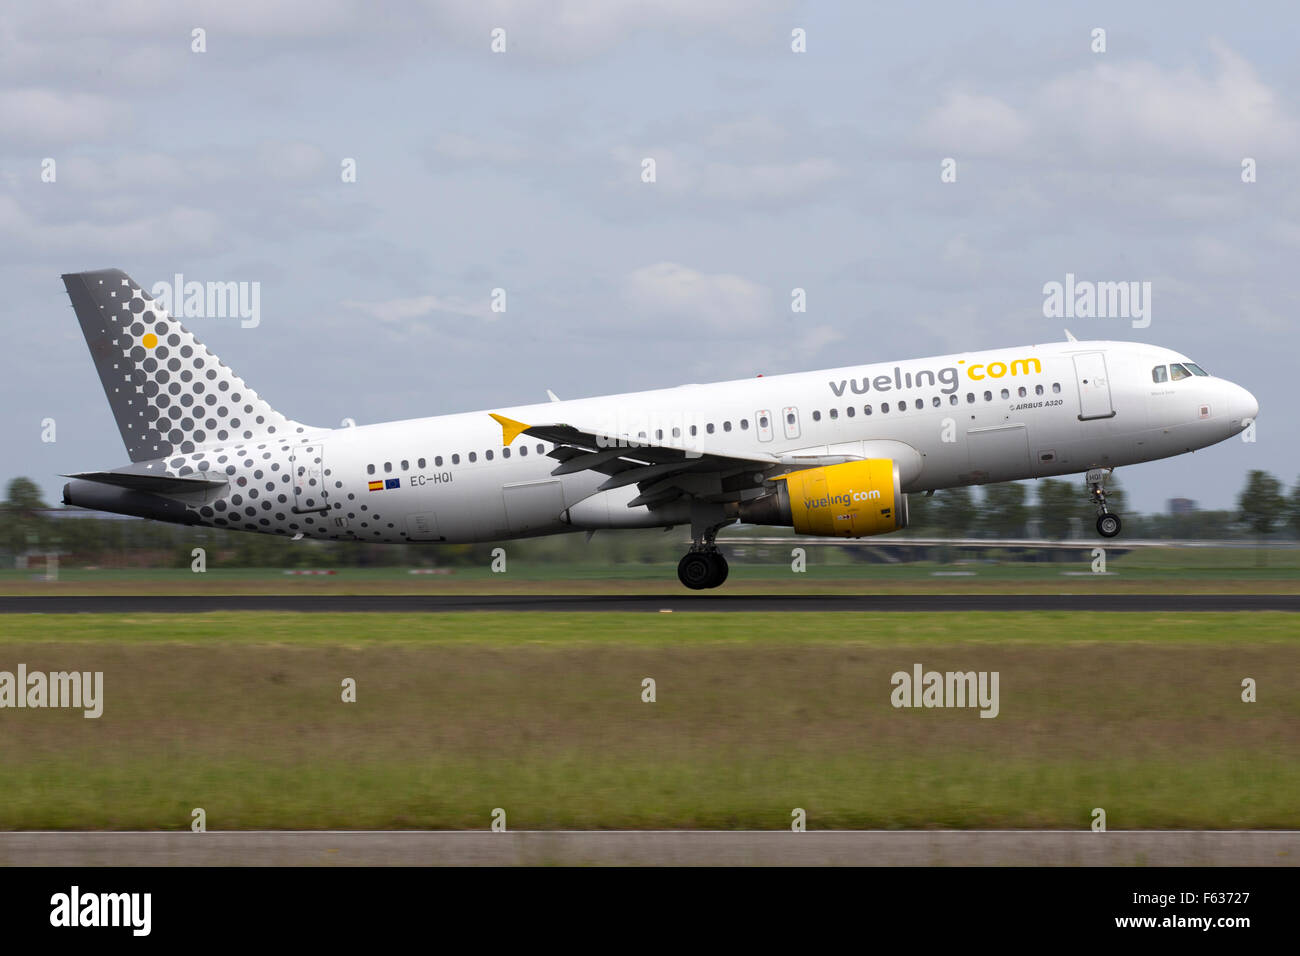 Vueling Airbus A320 - Stock Image